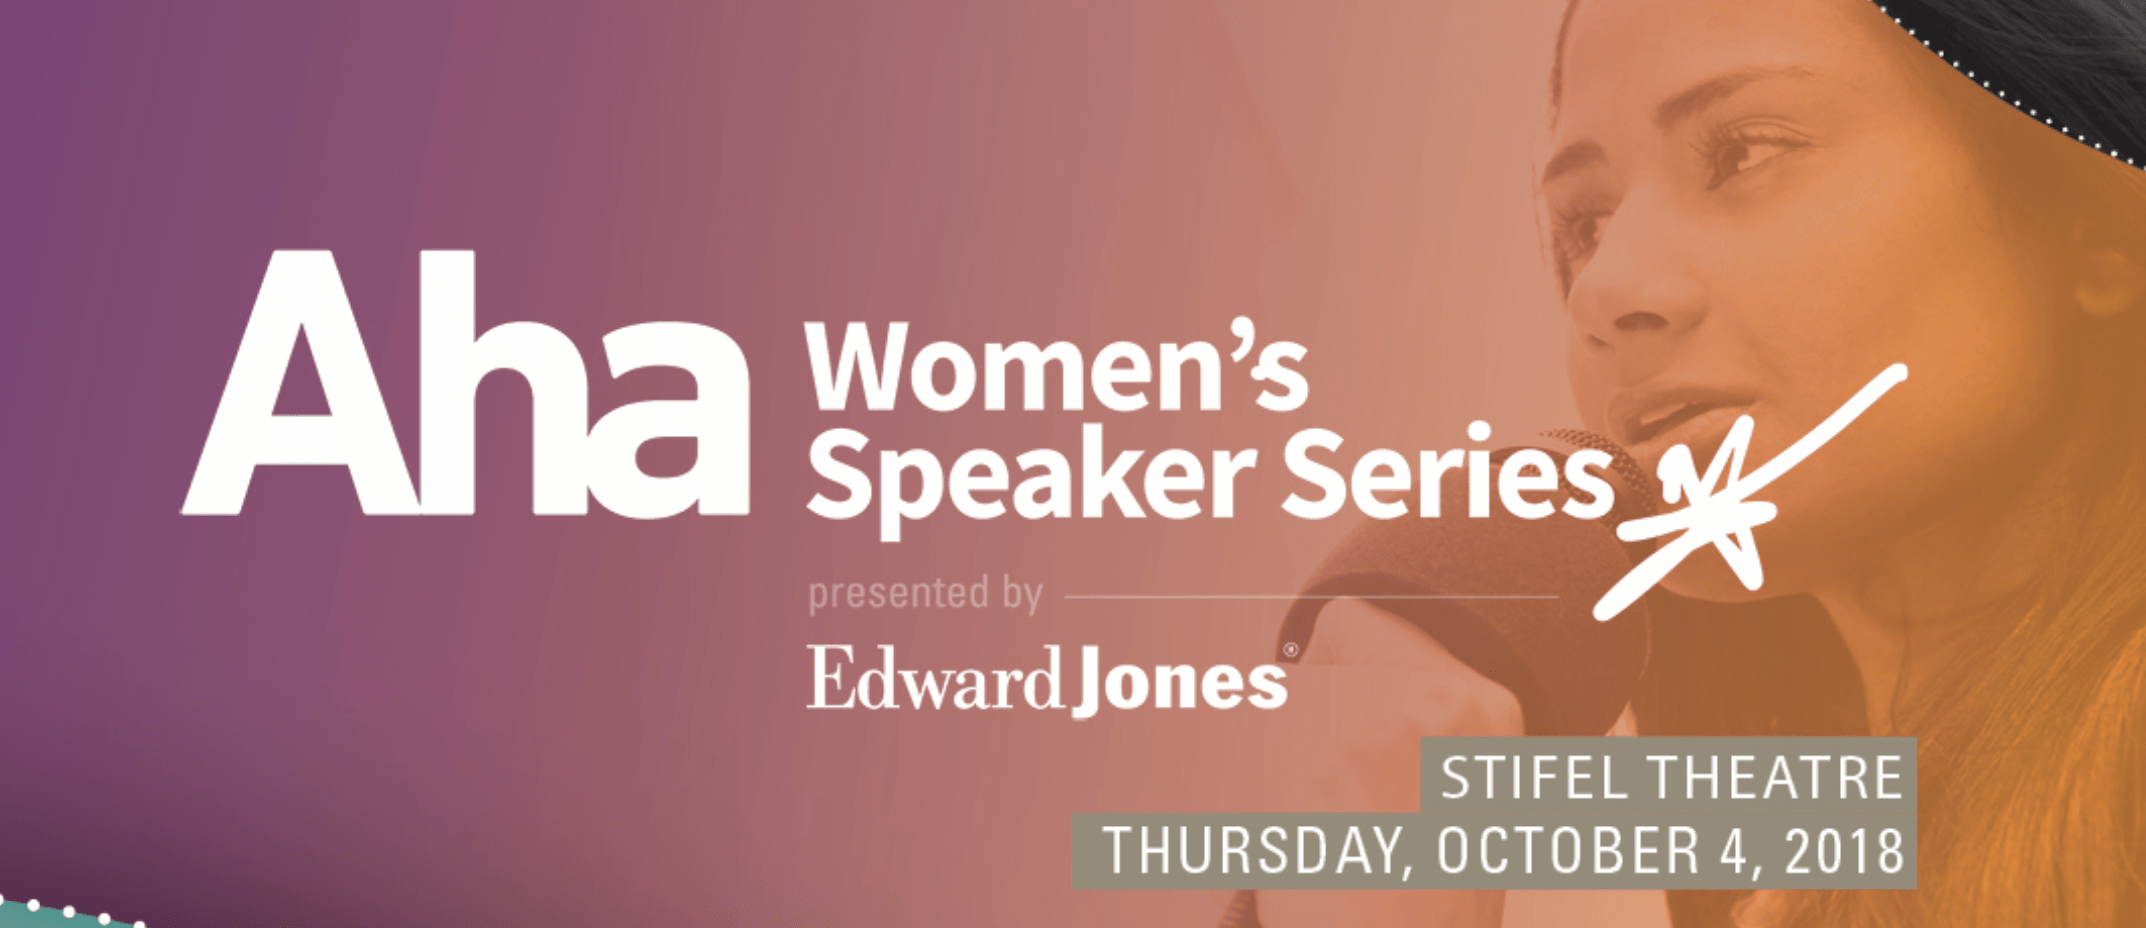 An Aha Moment You Need: Aha Women's Speaker Series in St. Louis